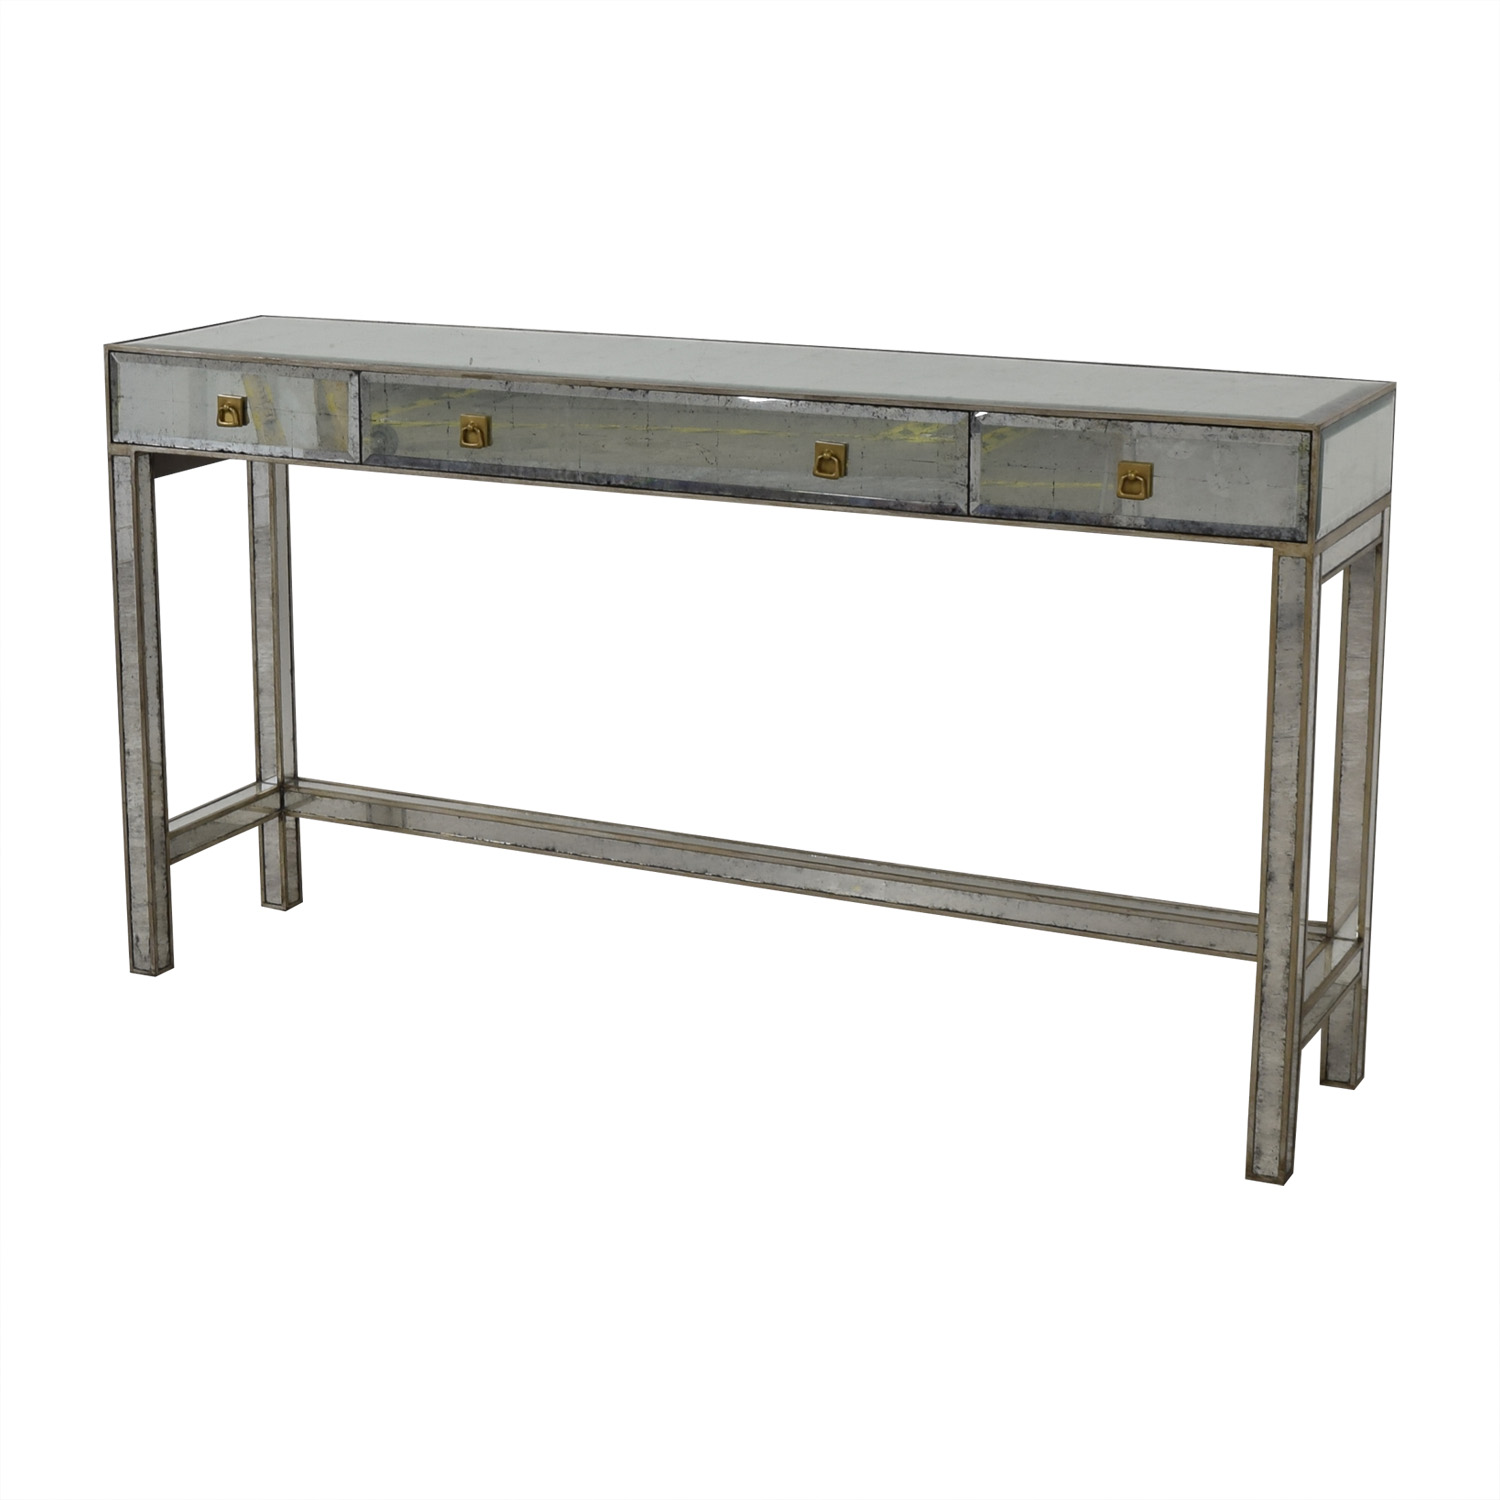 Safavieh Safavieh Mirrored Console Table dimensions